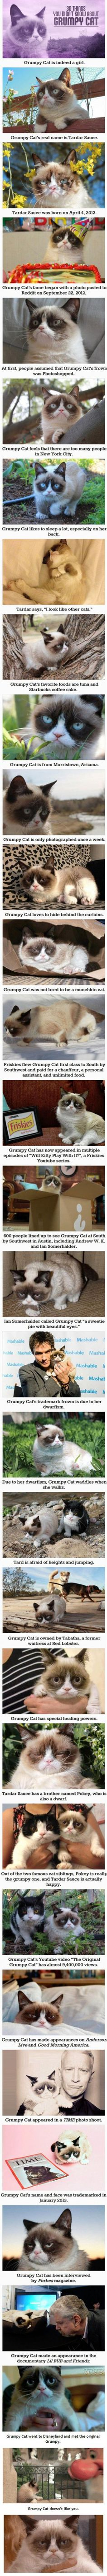 Things That You Probably Didn't Know About Grumpy Cat...